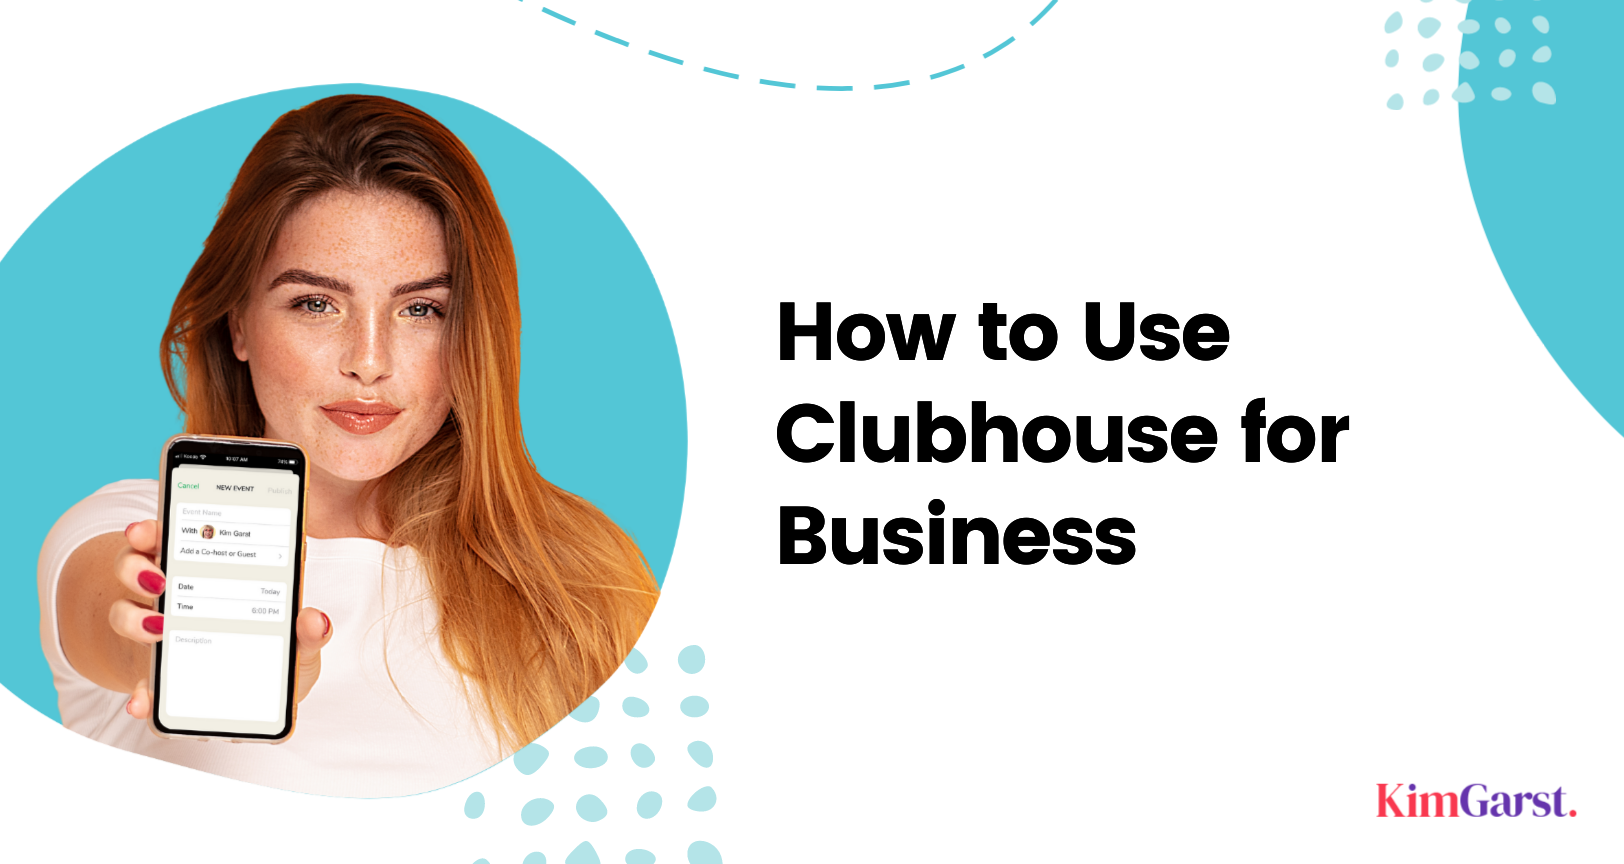 How to Use Clubhouse for Business?